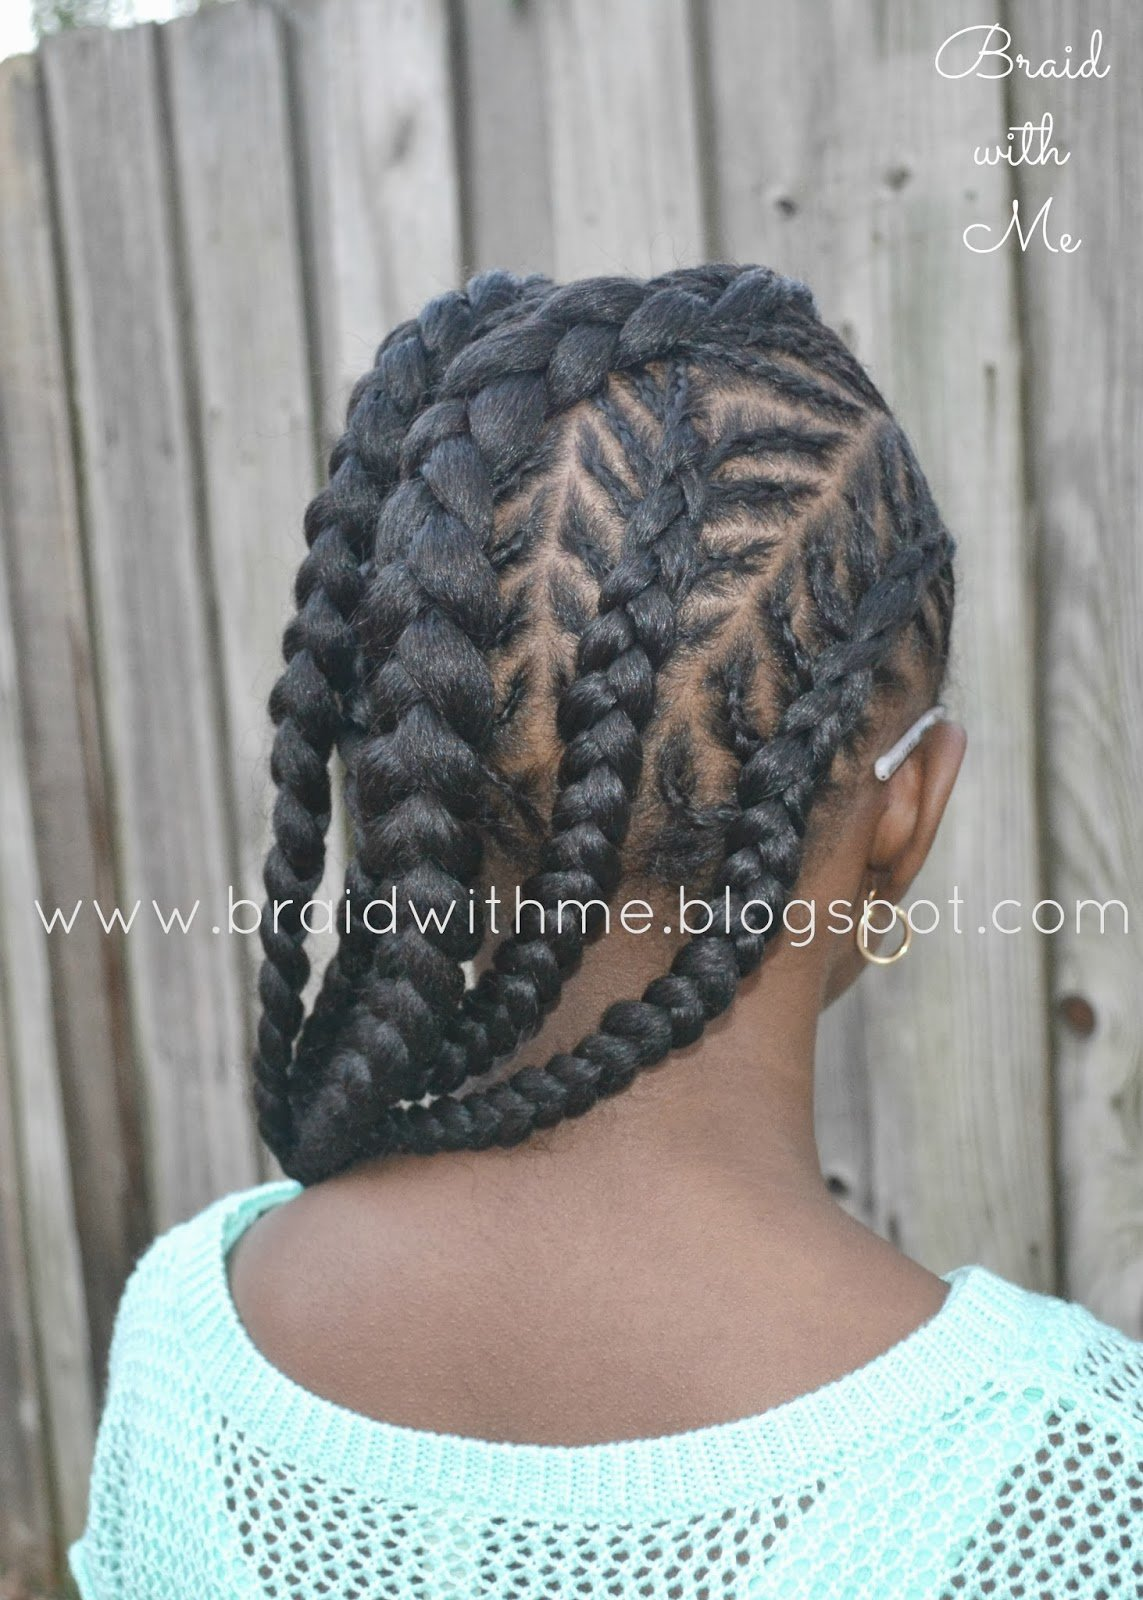 The Best Braid With Me Natural Styles For Kids Fish Bone Cornrows Pictures